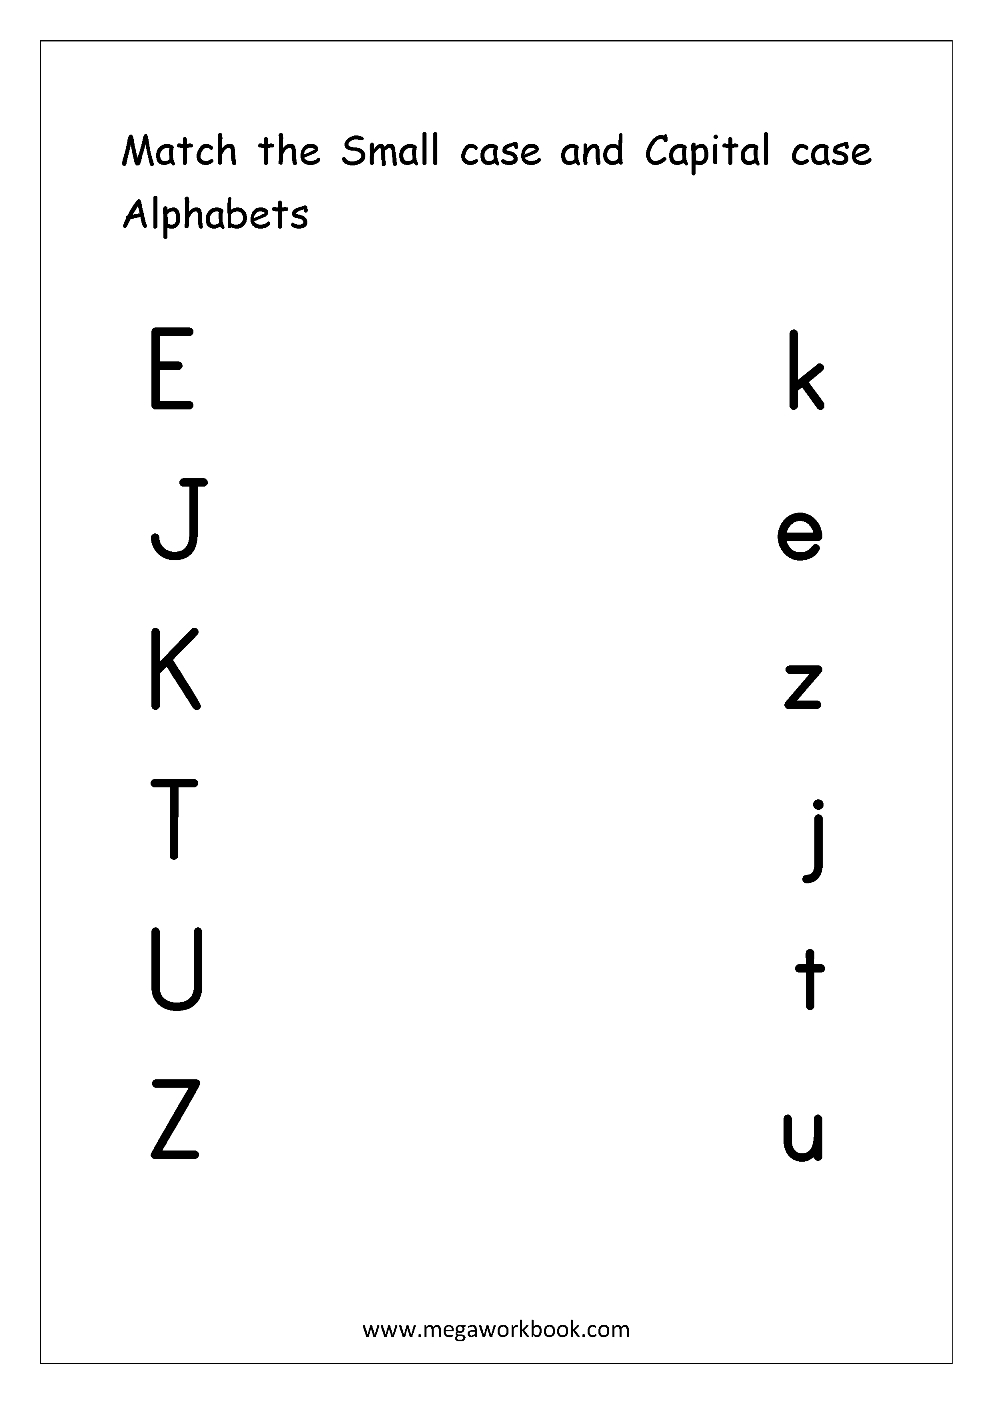 Free English Worksheets - Alphabet Matching - Megaworkbook within Alphabet Matching Worksheets For Kindergarten Pdf